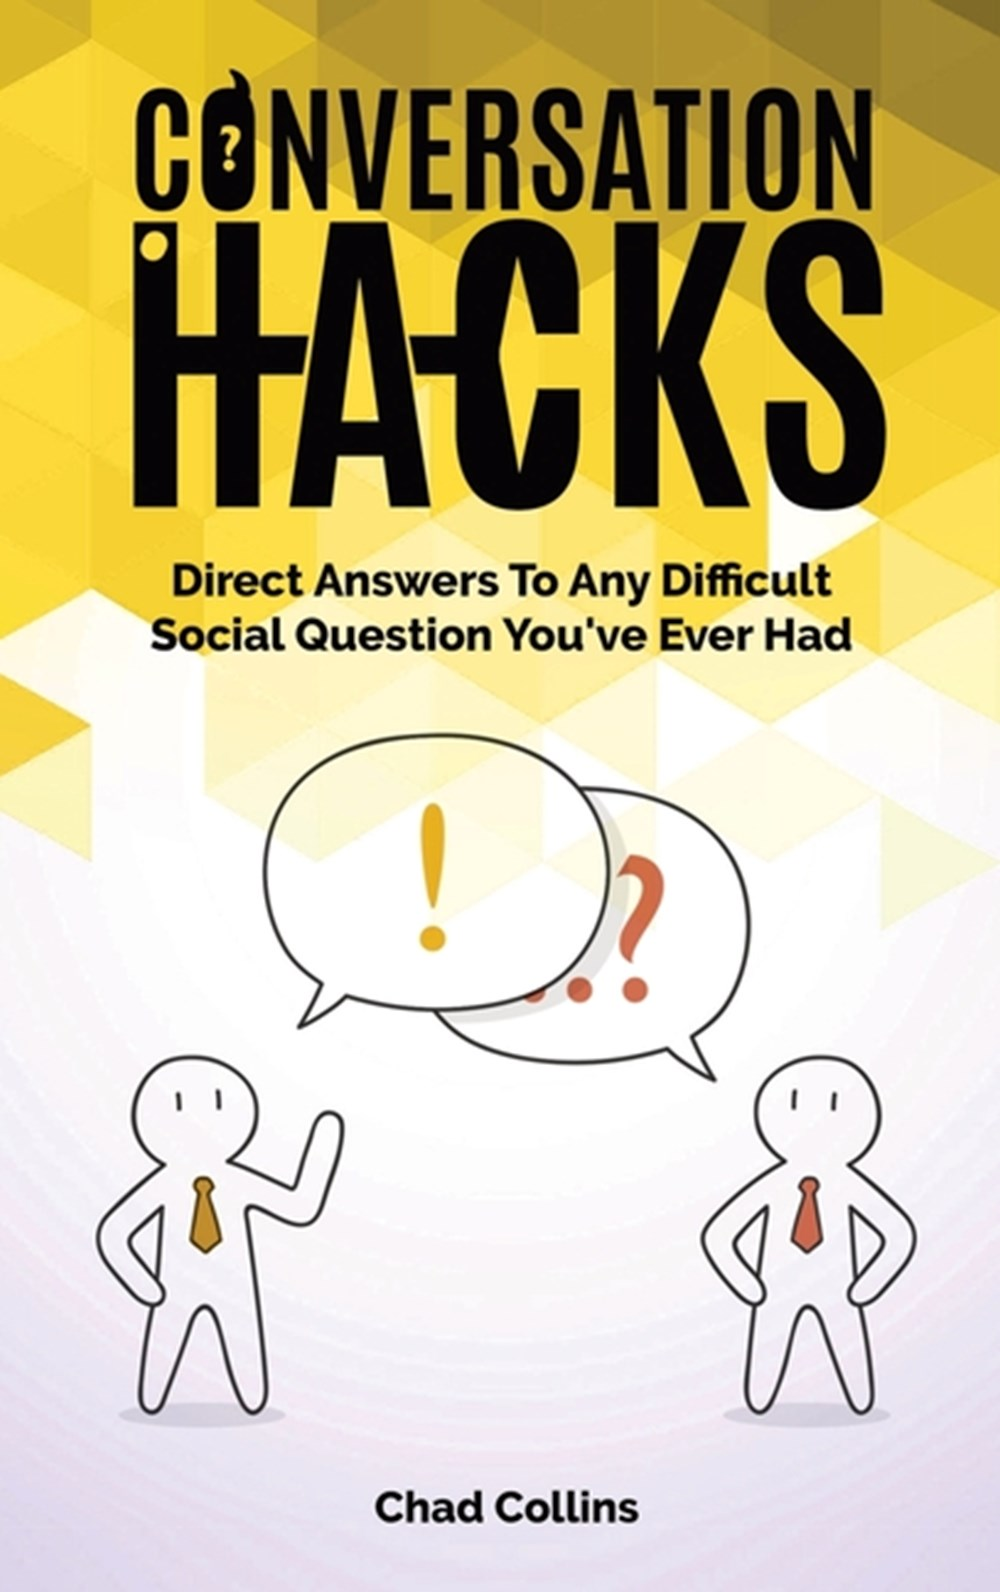 Conversation Hacks Direct Answers To Any Difficult Social Question You Have Ever Had